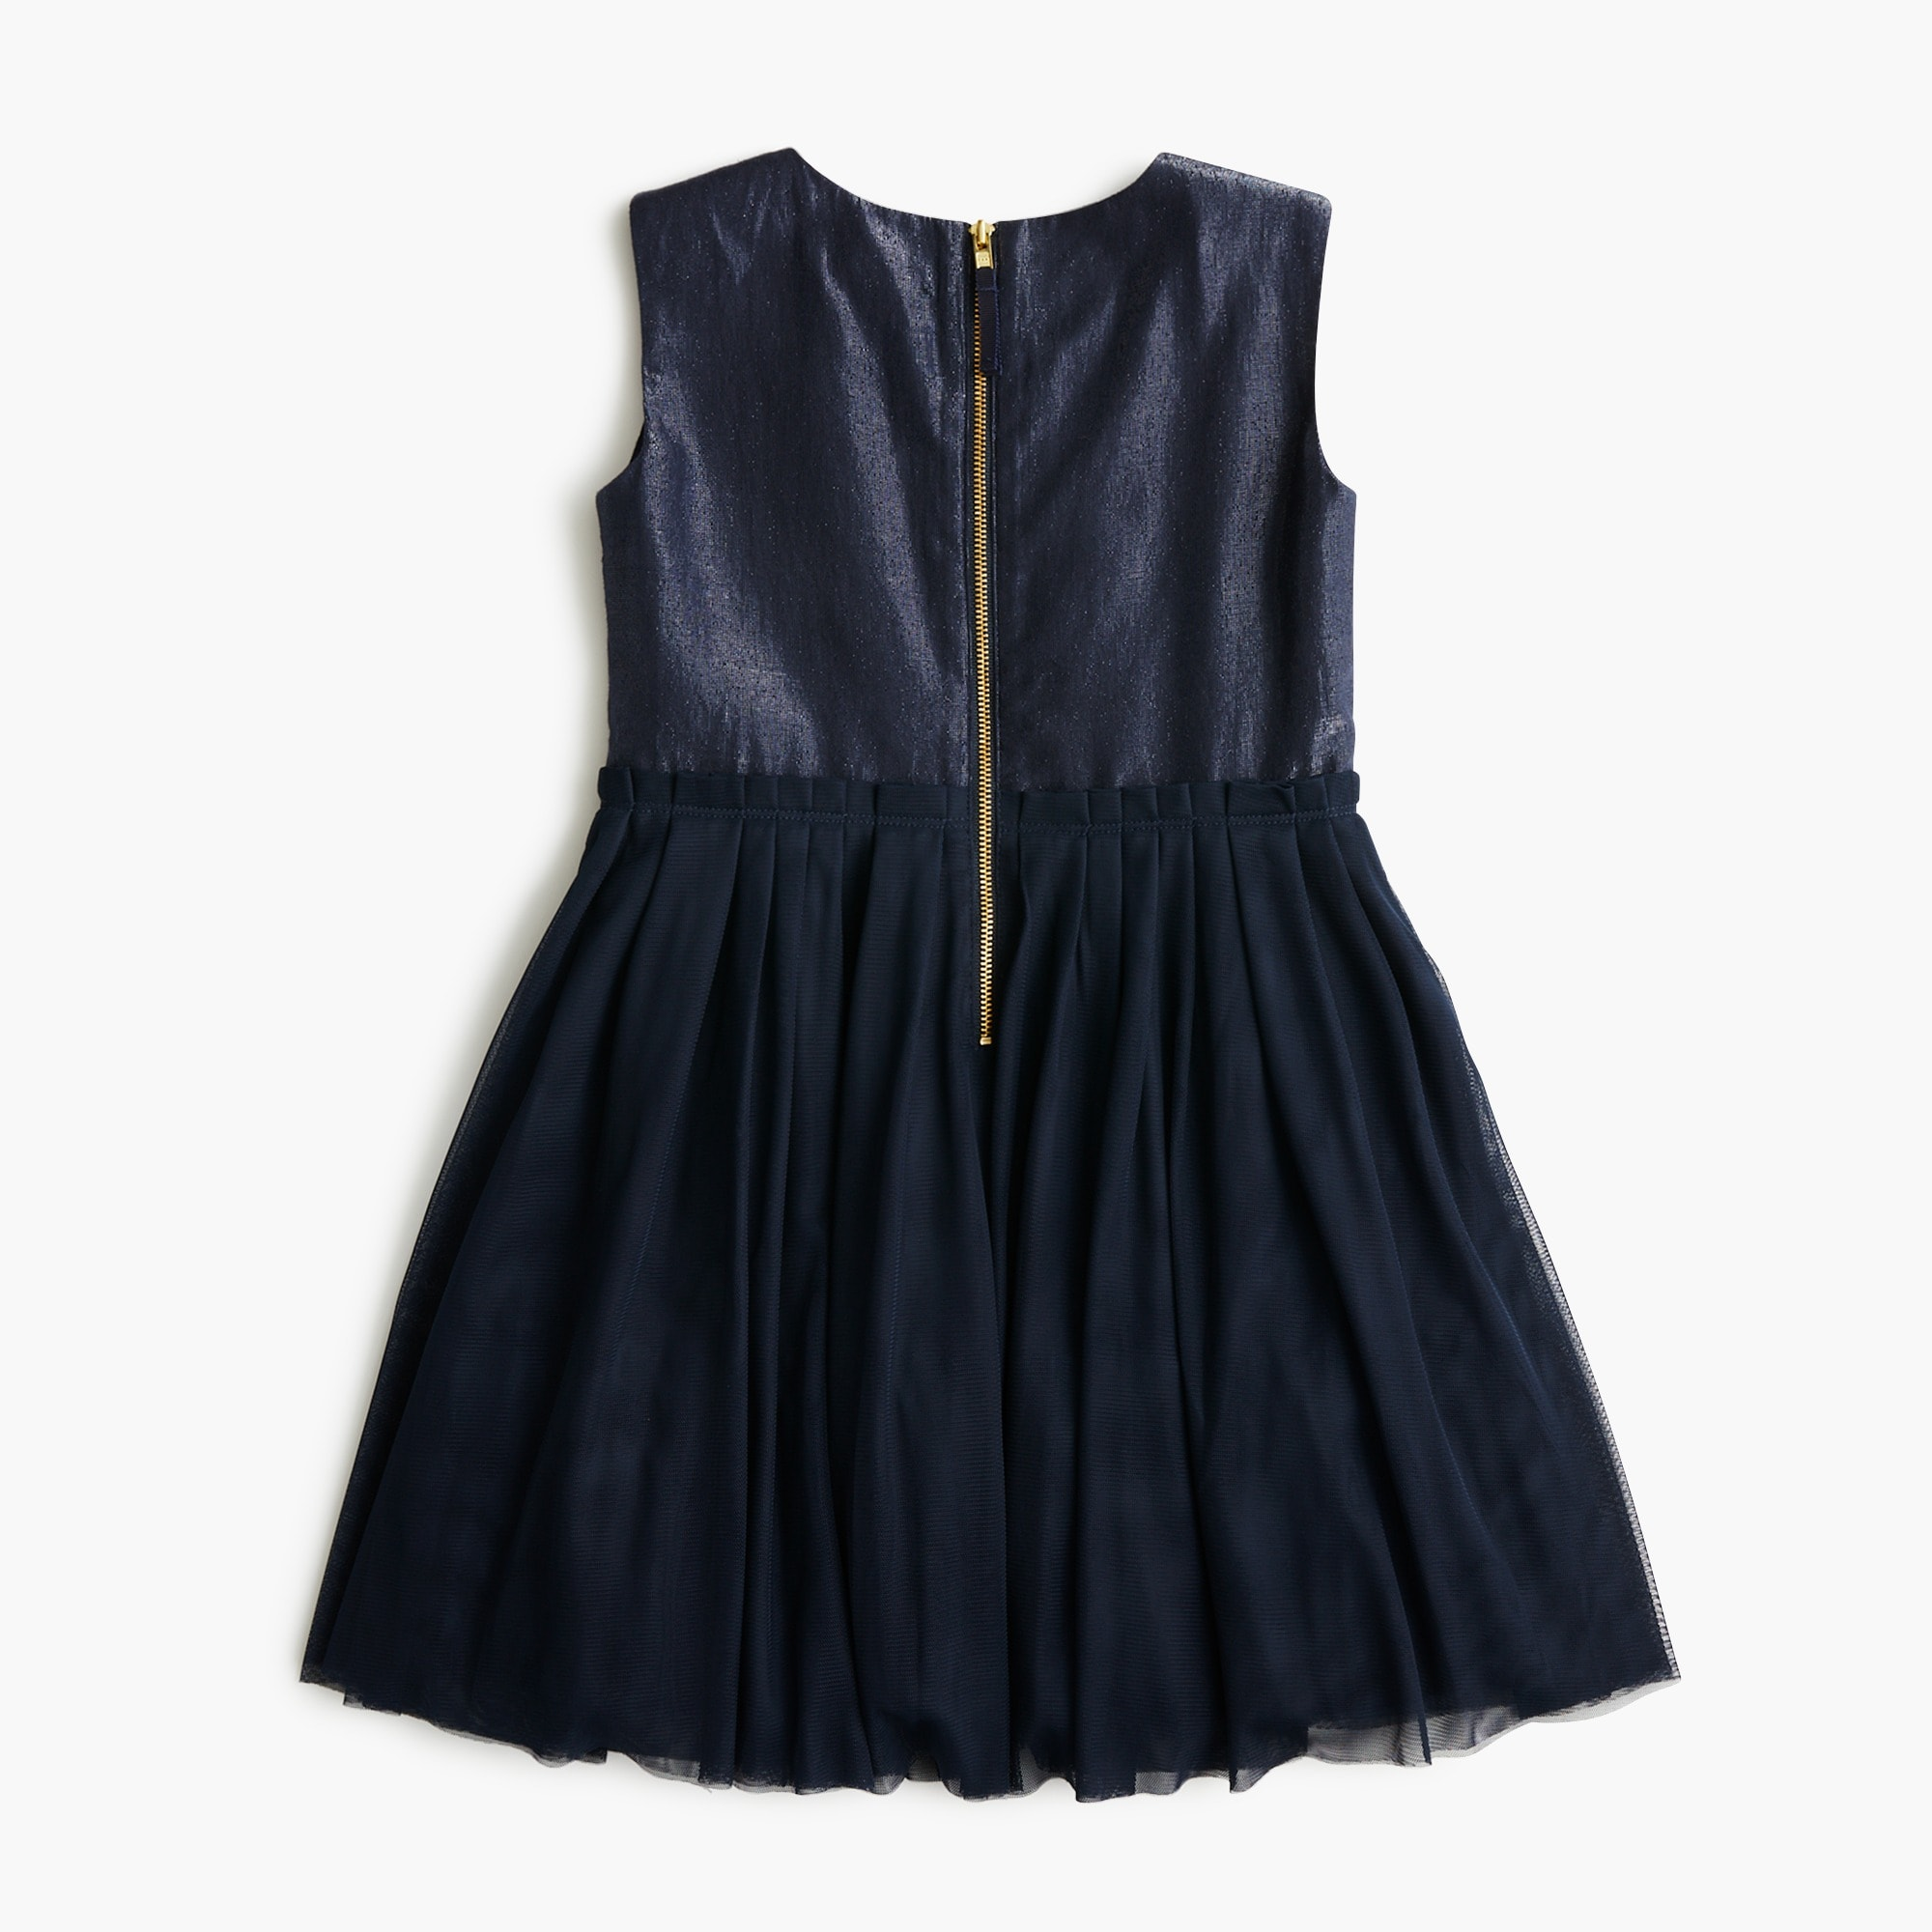 Image 1 for Girls' tulle-skirted dress